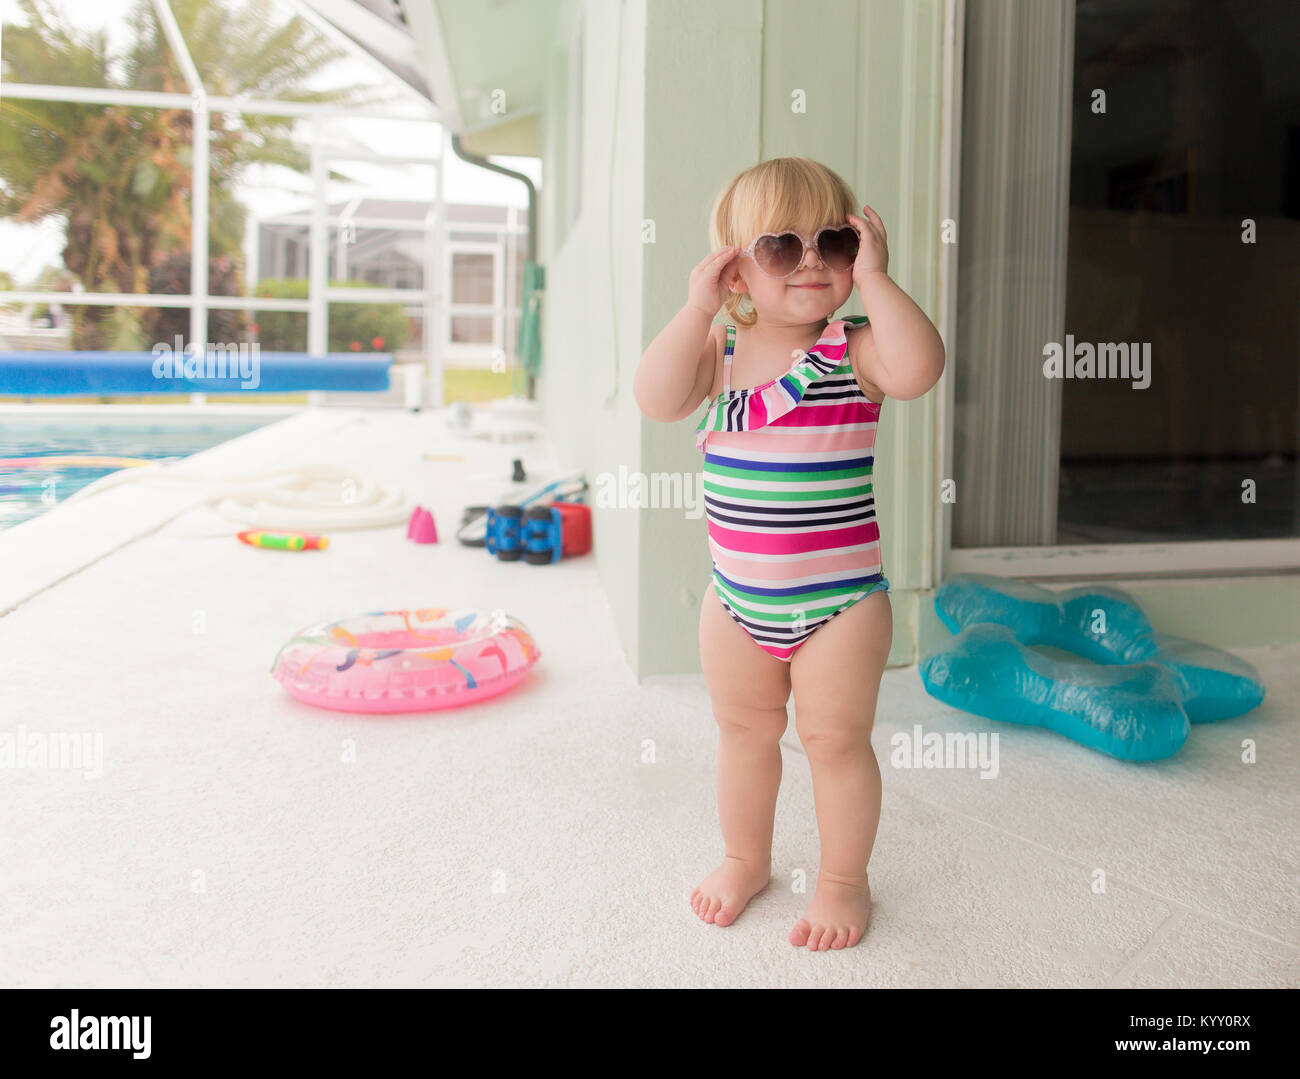 Girl in swimwear wearing heart shape sunglasses while standing at poolside - Stock Image